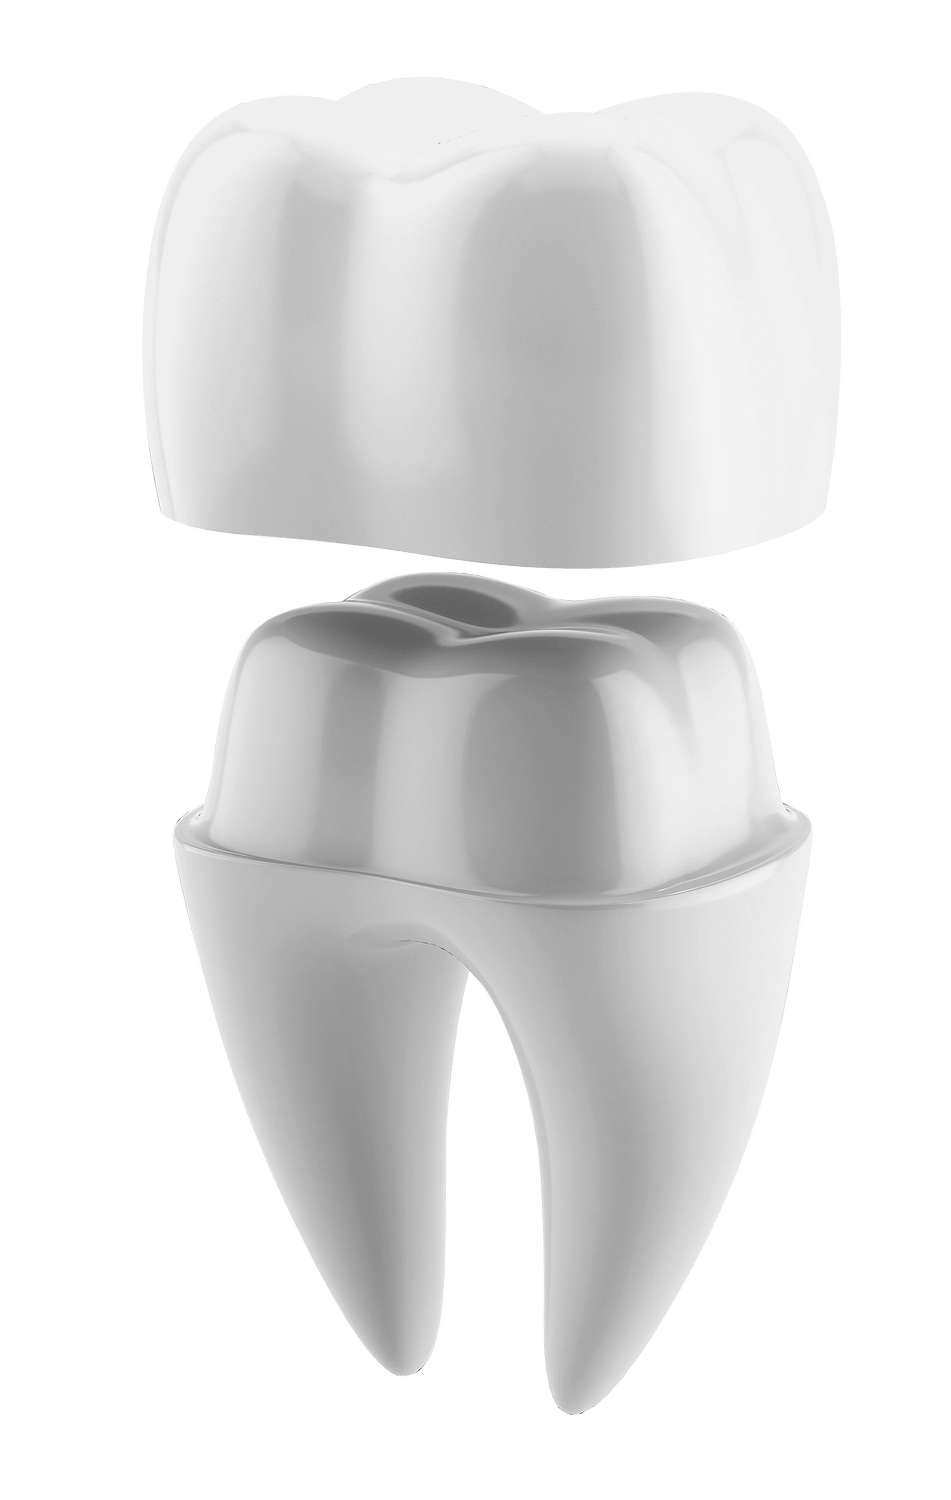 dental crown model MONTCLAIR, NJ